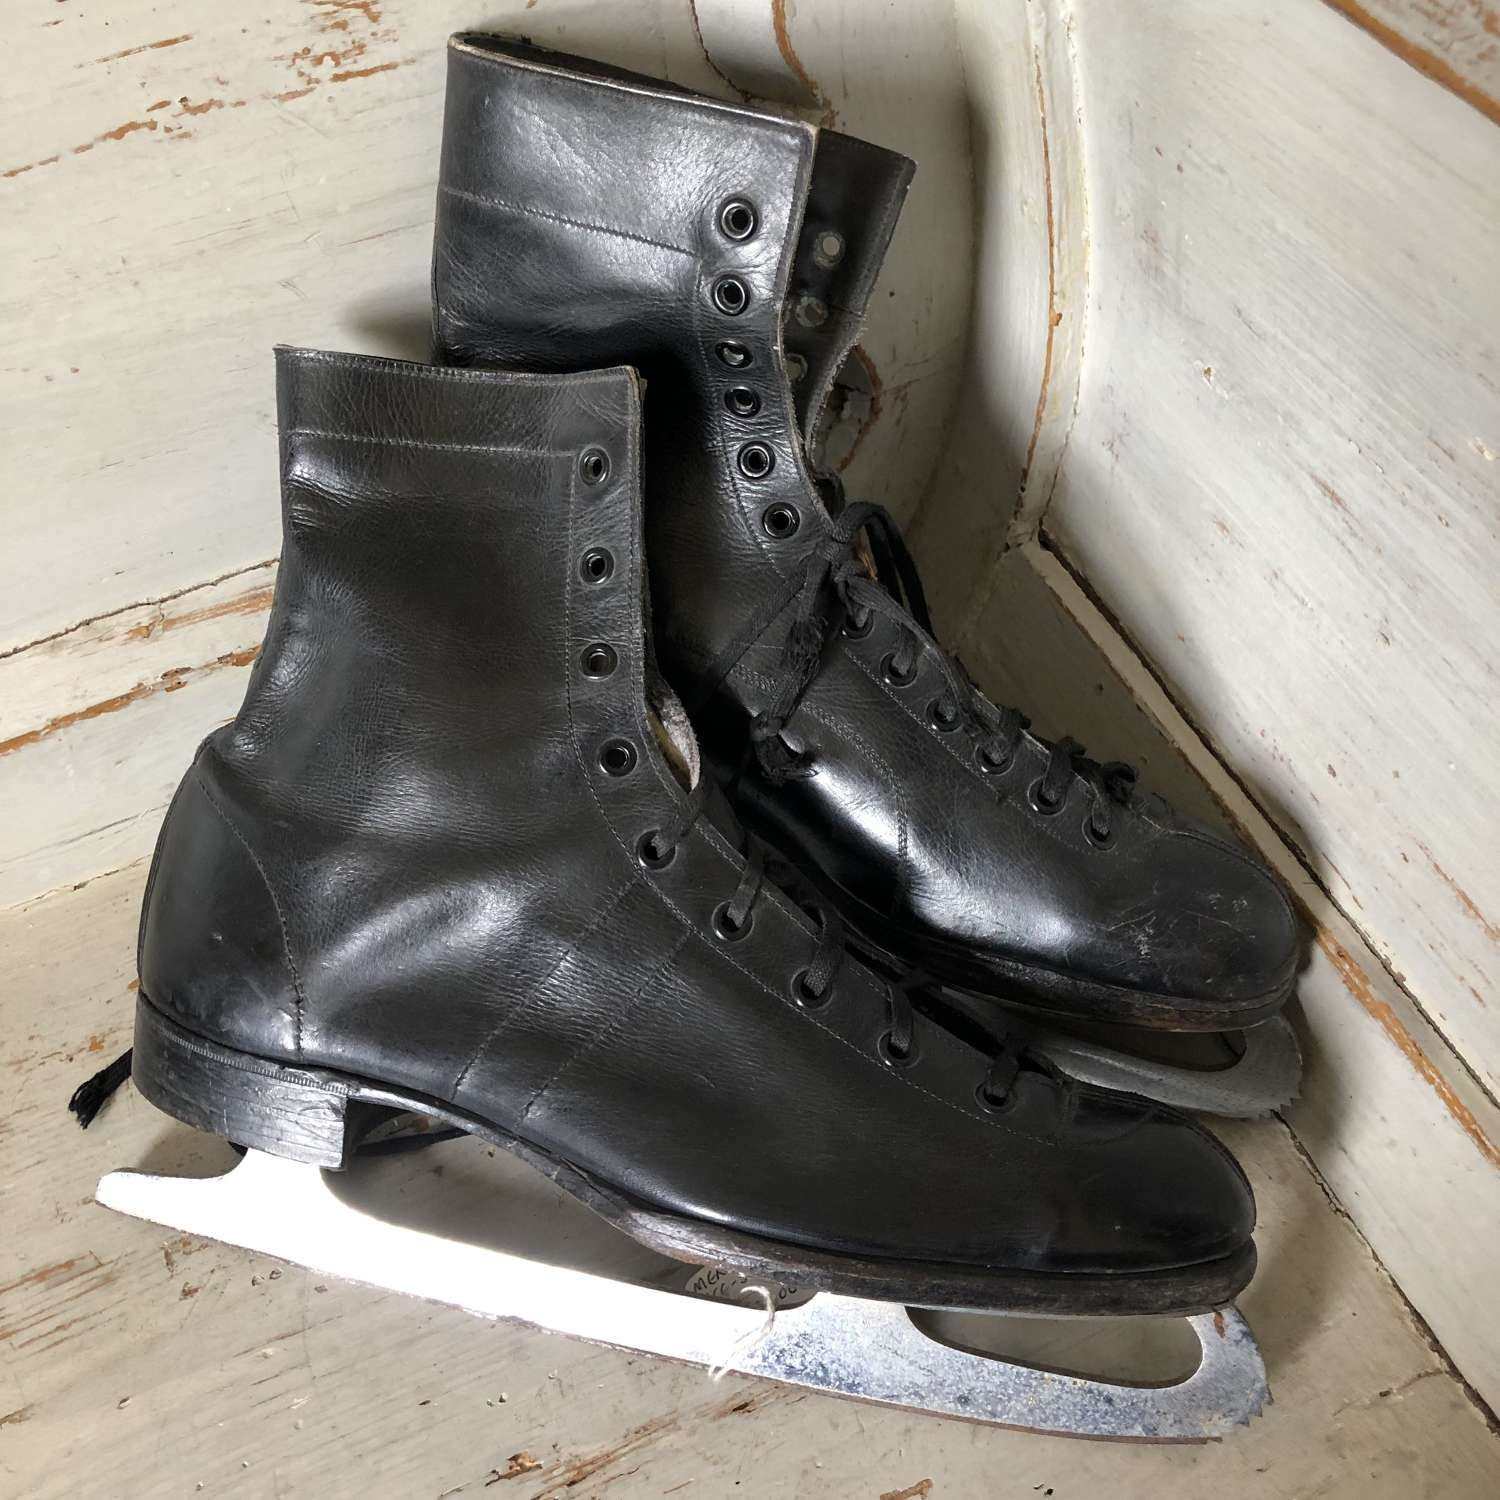 Vintage Ice Skating Boots